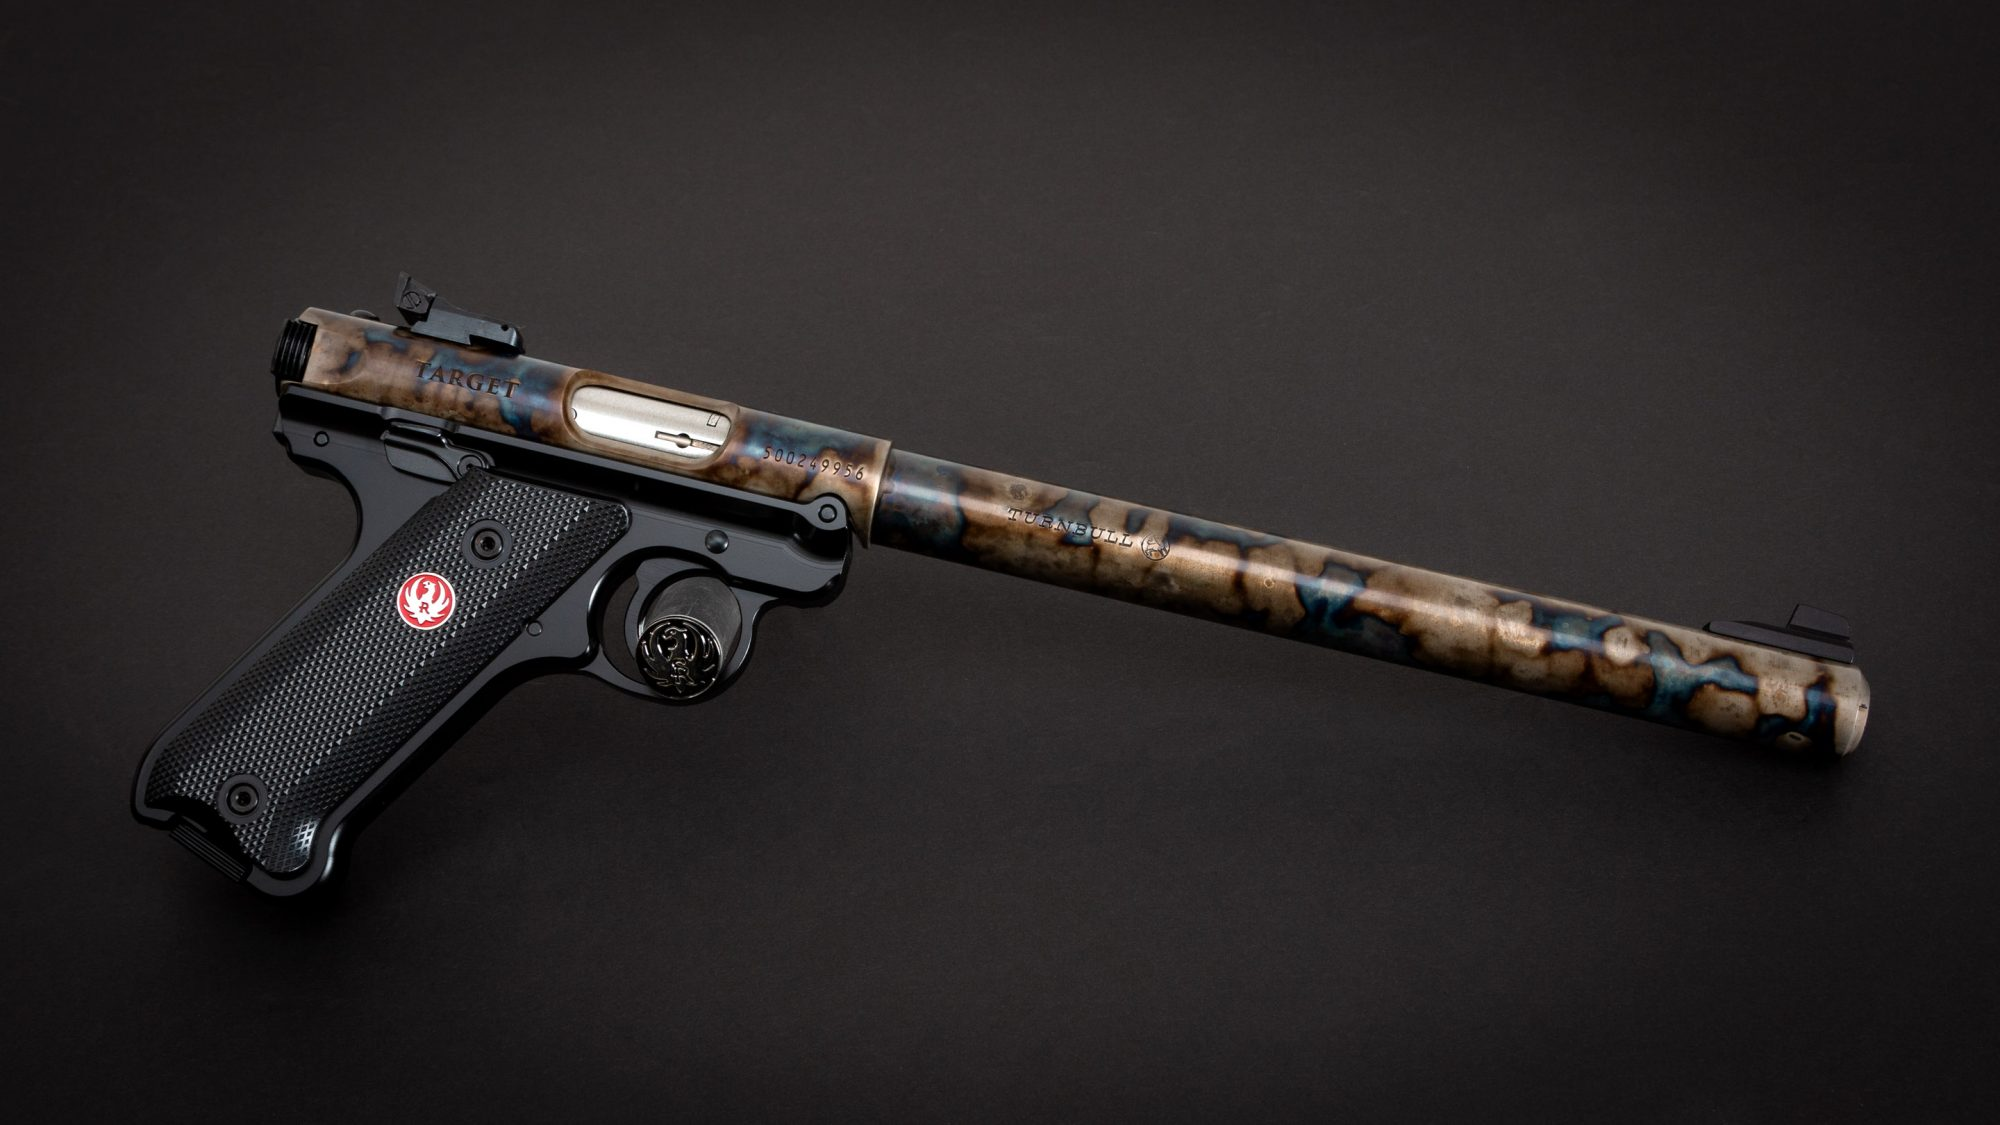 Photo of a color case hardened Ruger Mark IV Target 10 Inch Barrel, featuring bone charcoal color case hardening by Turnbull Restoration of Bloomfield, NY